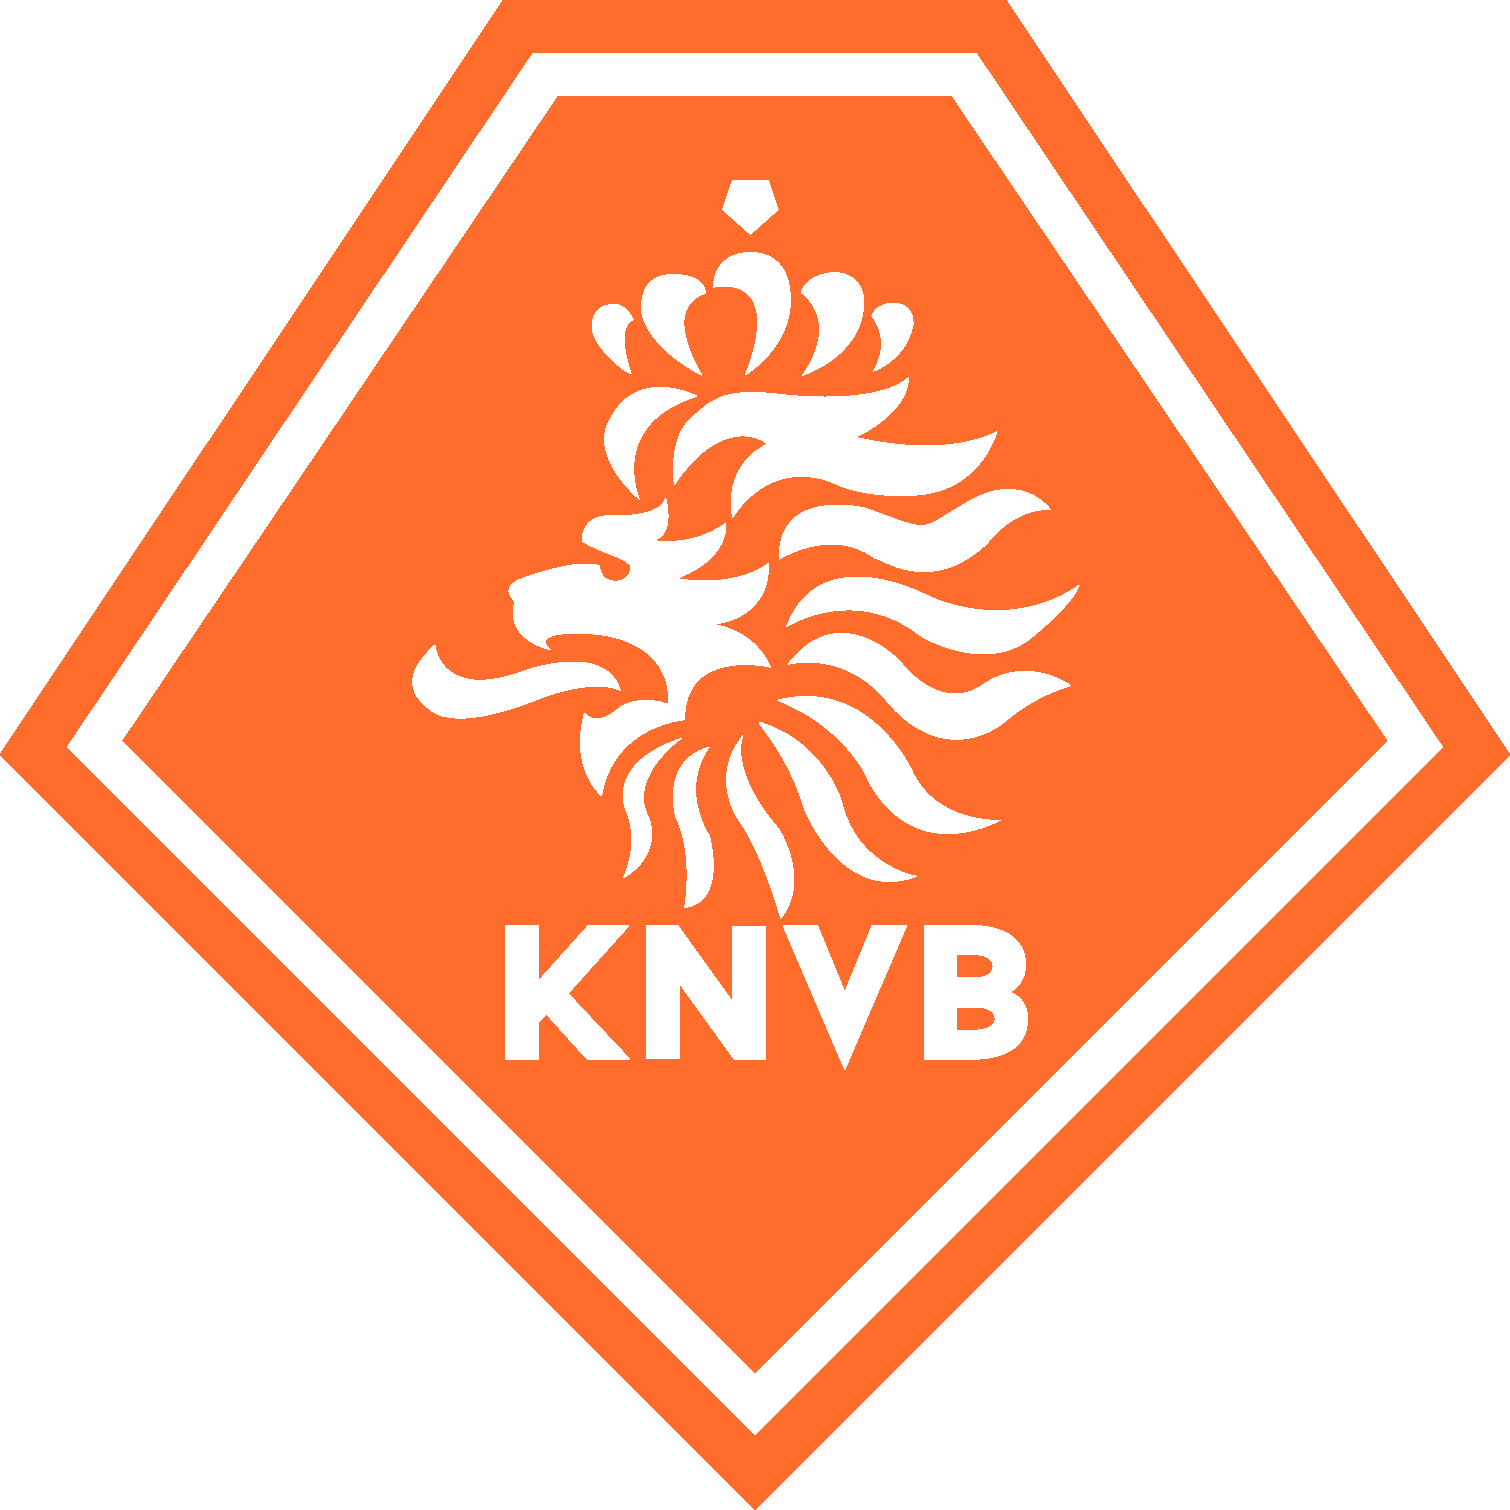 Knvb logo clipart banner library stock KNVB - Royal Netherlands Football Association & National ... banner library stock